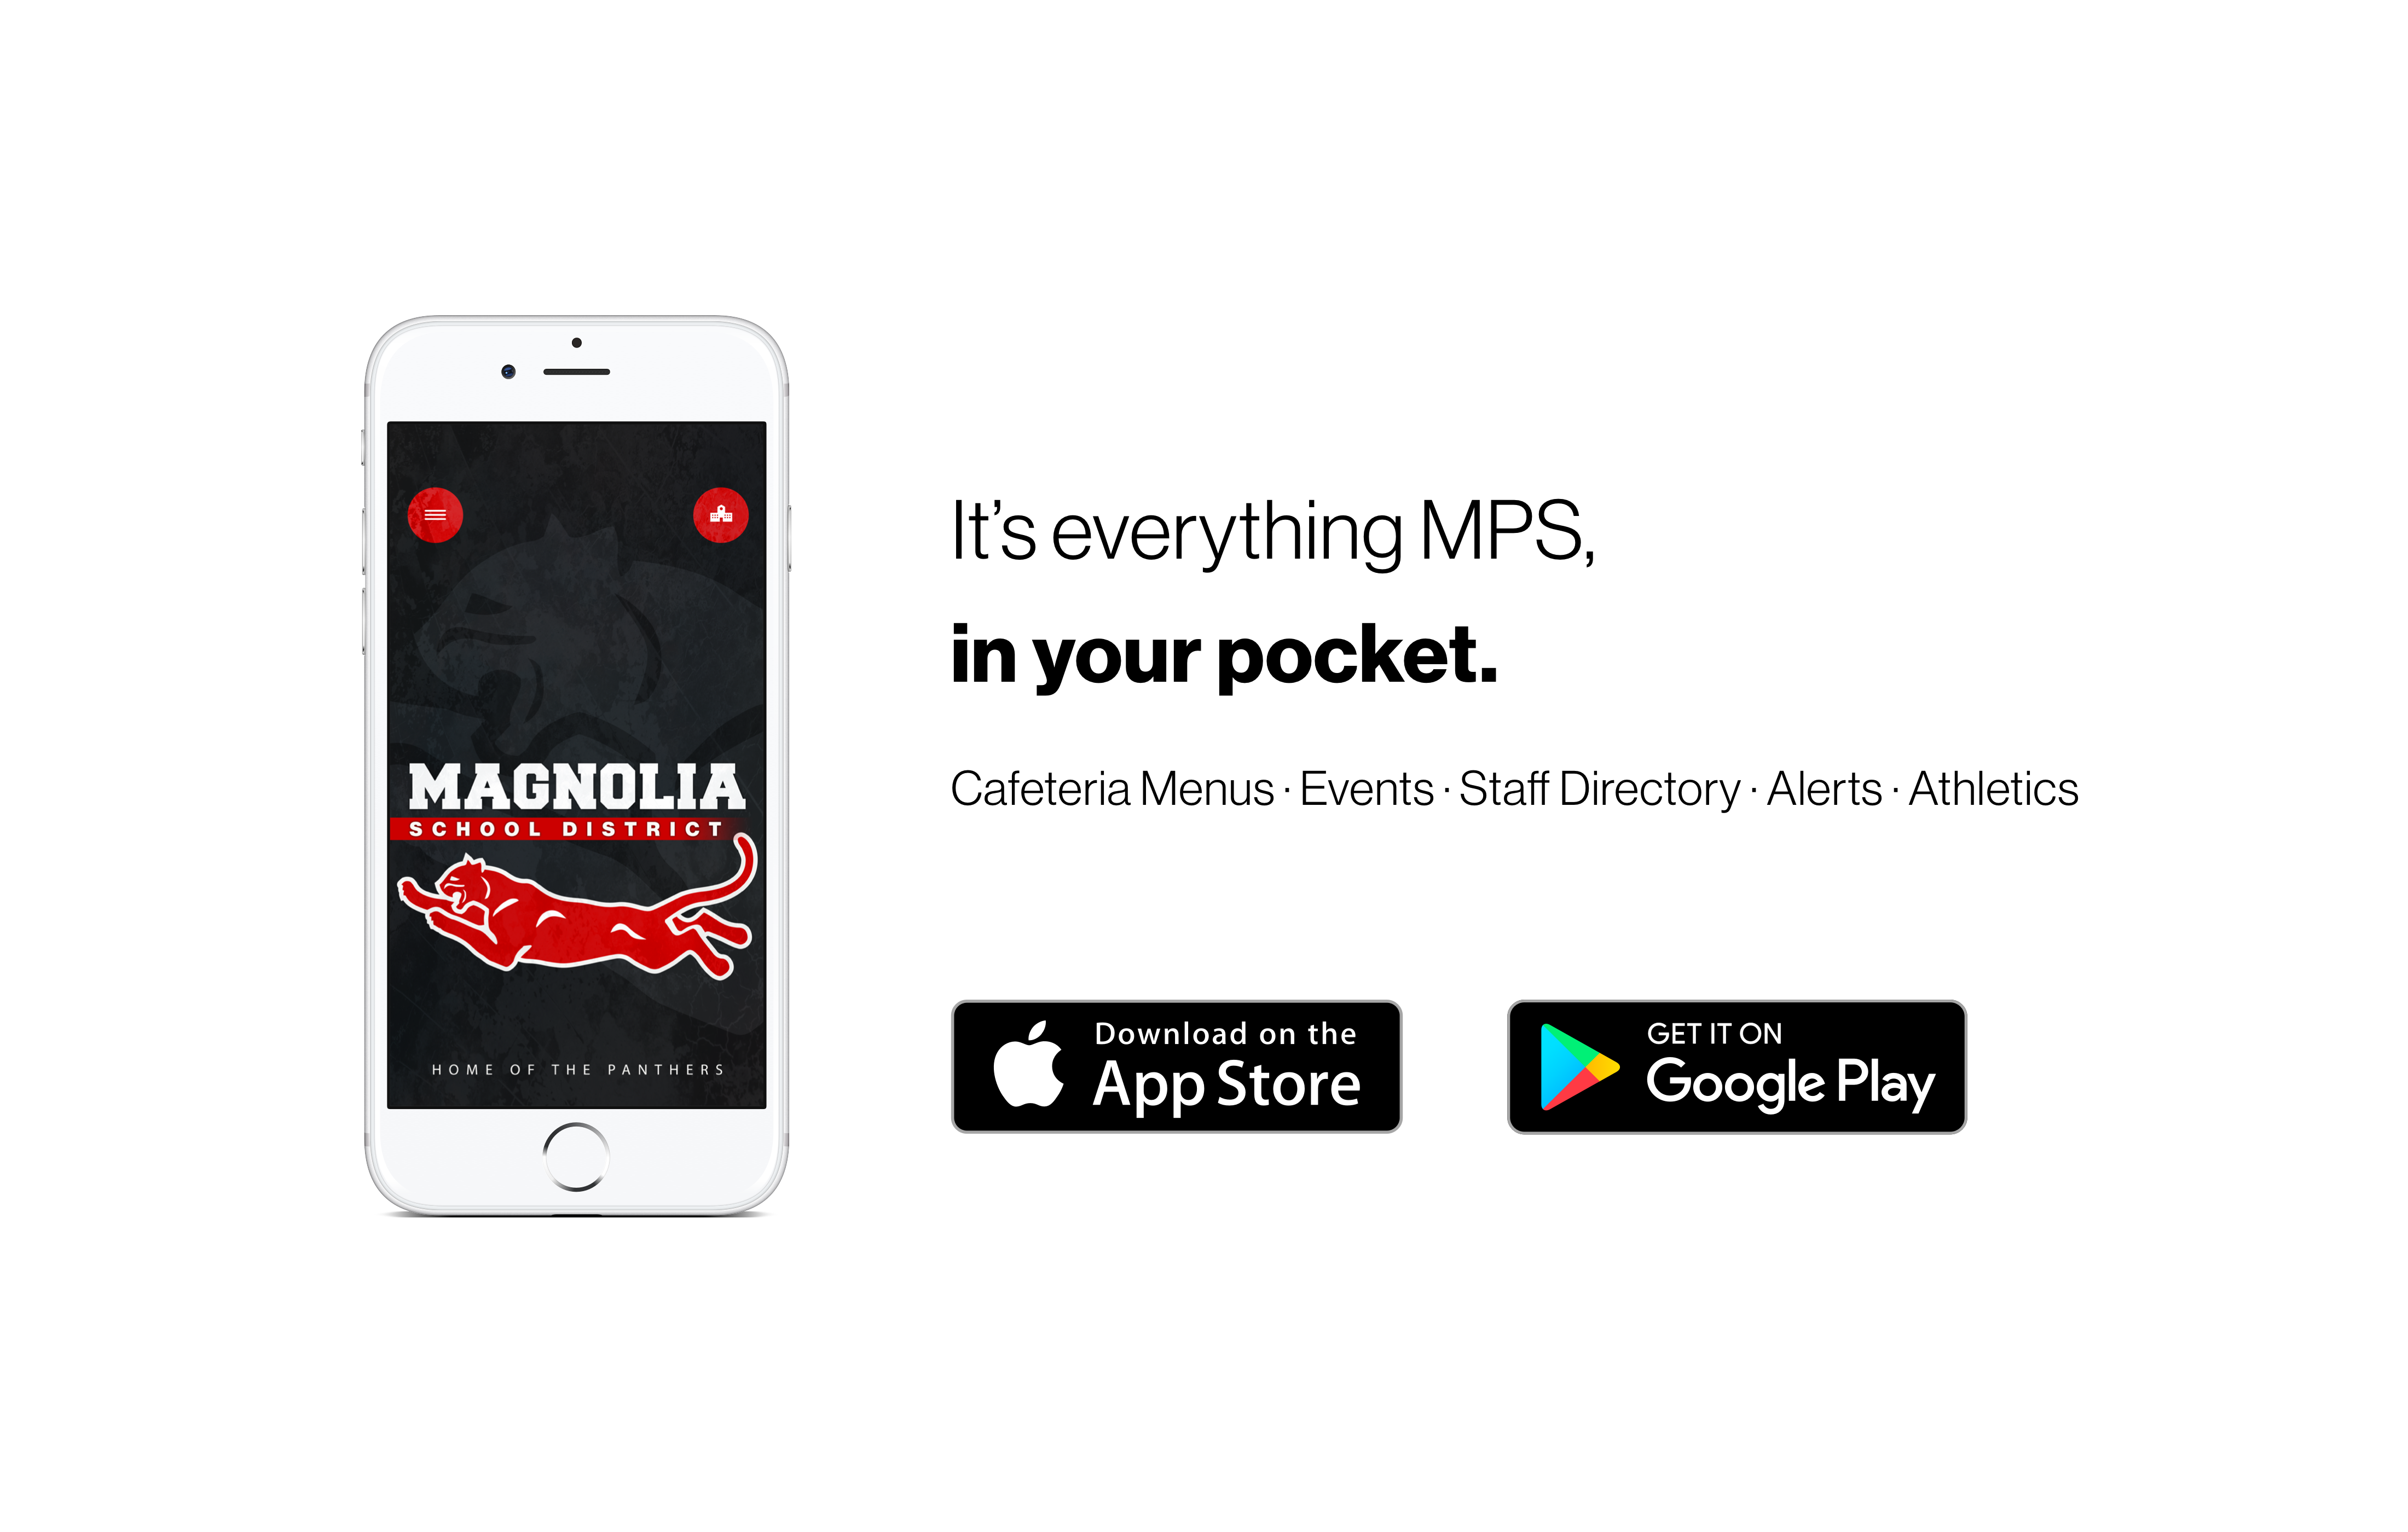 It's everything MPS, in your pocket.